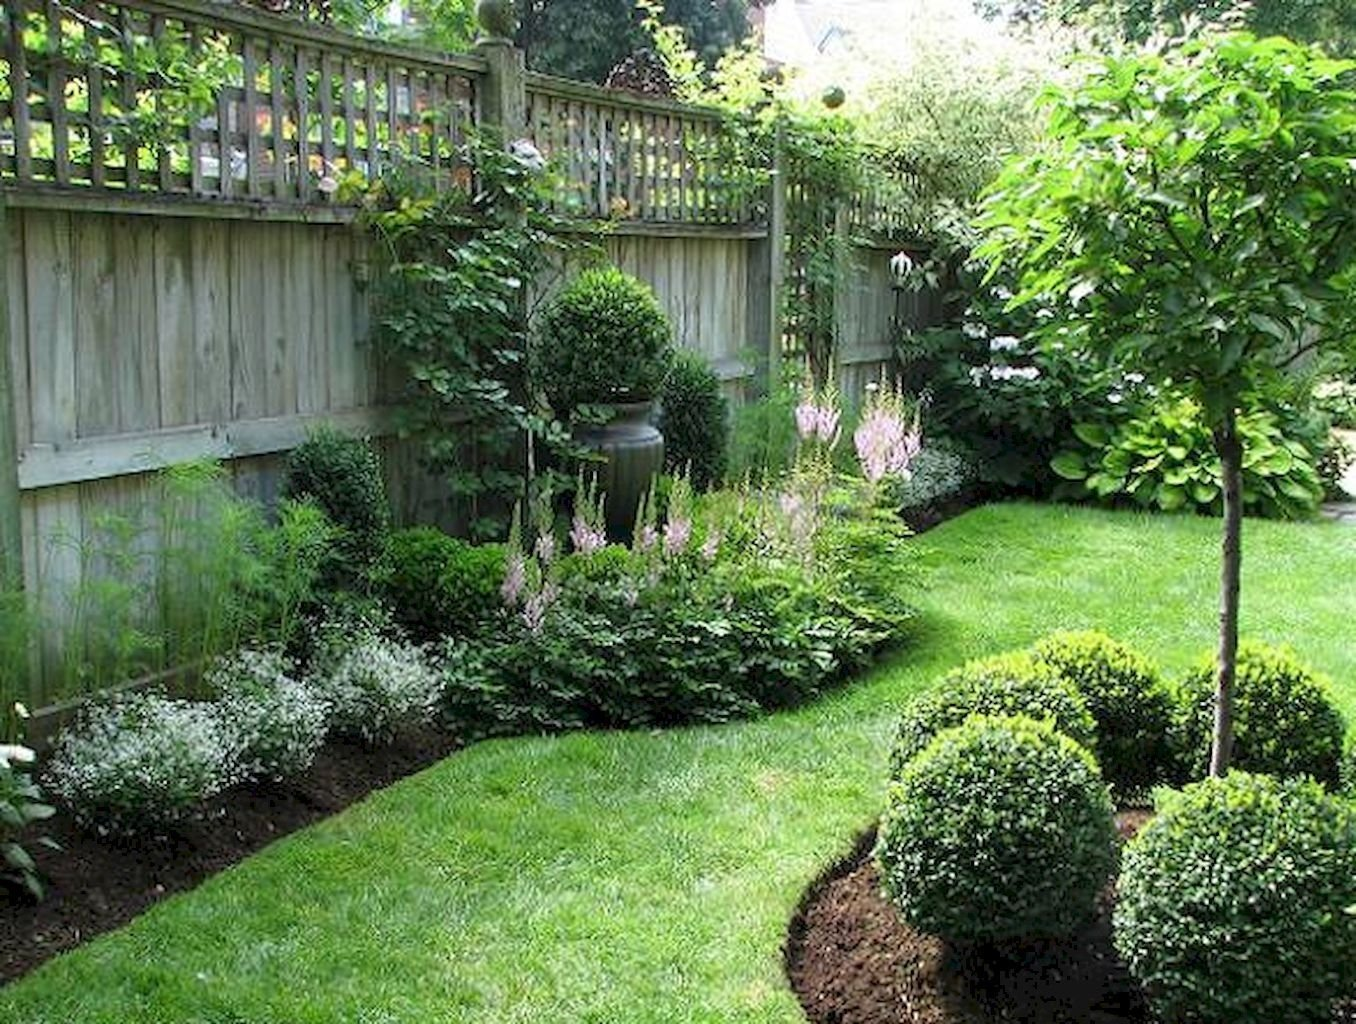 10 Most Recommended Backyard Landscaping Ideas For Privacy 50 backyard privacy fence landscaping ideas on a budget backyard 1 2020